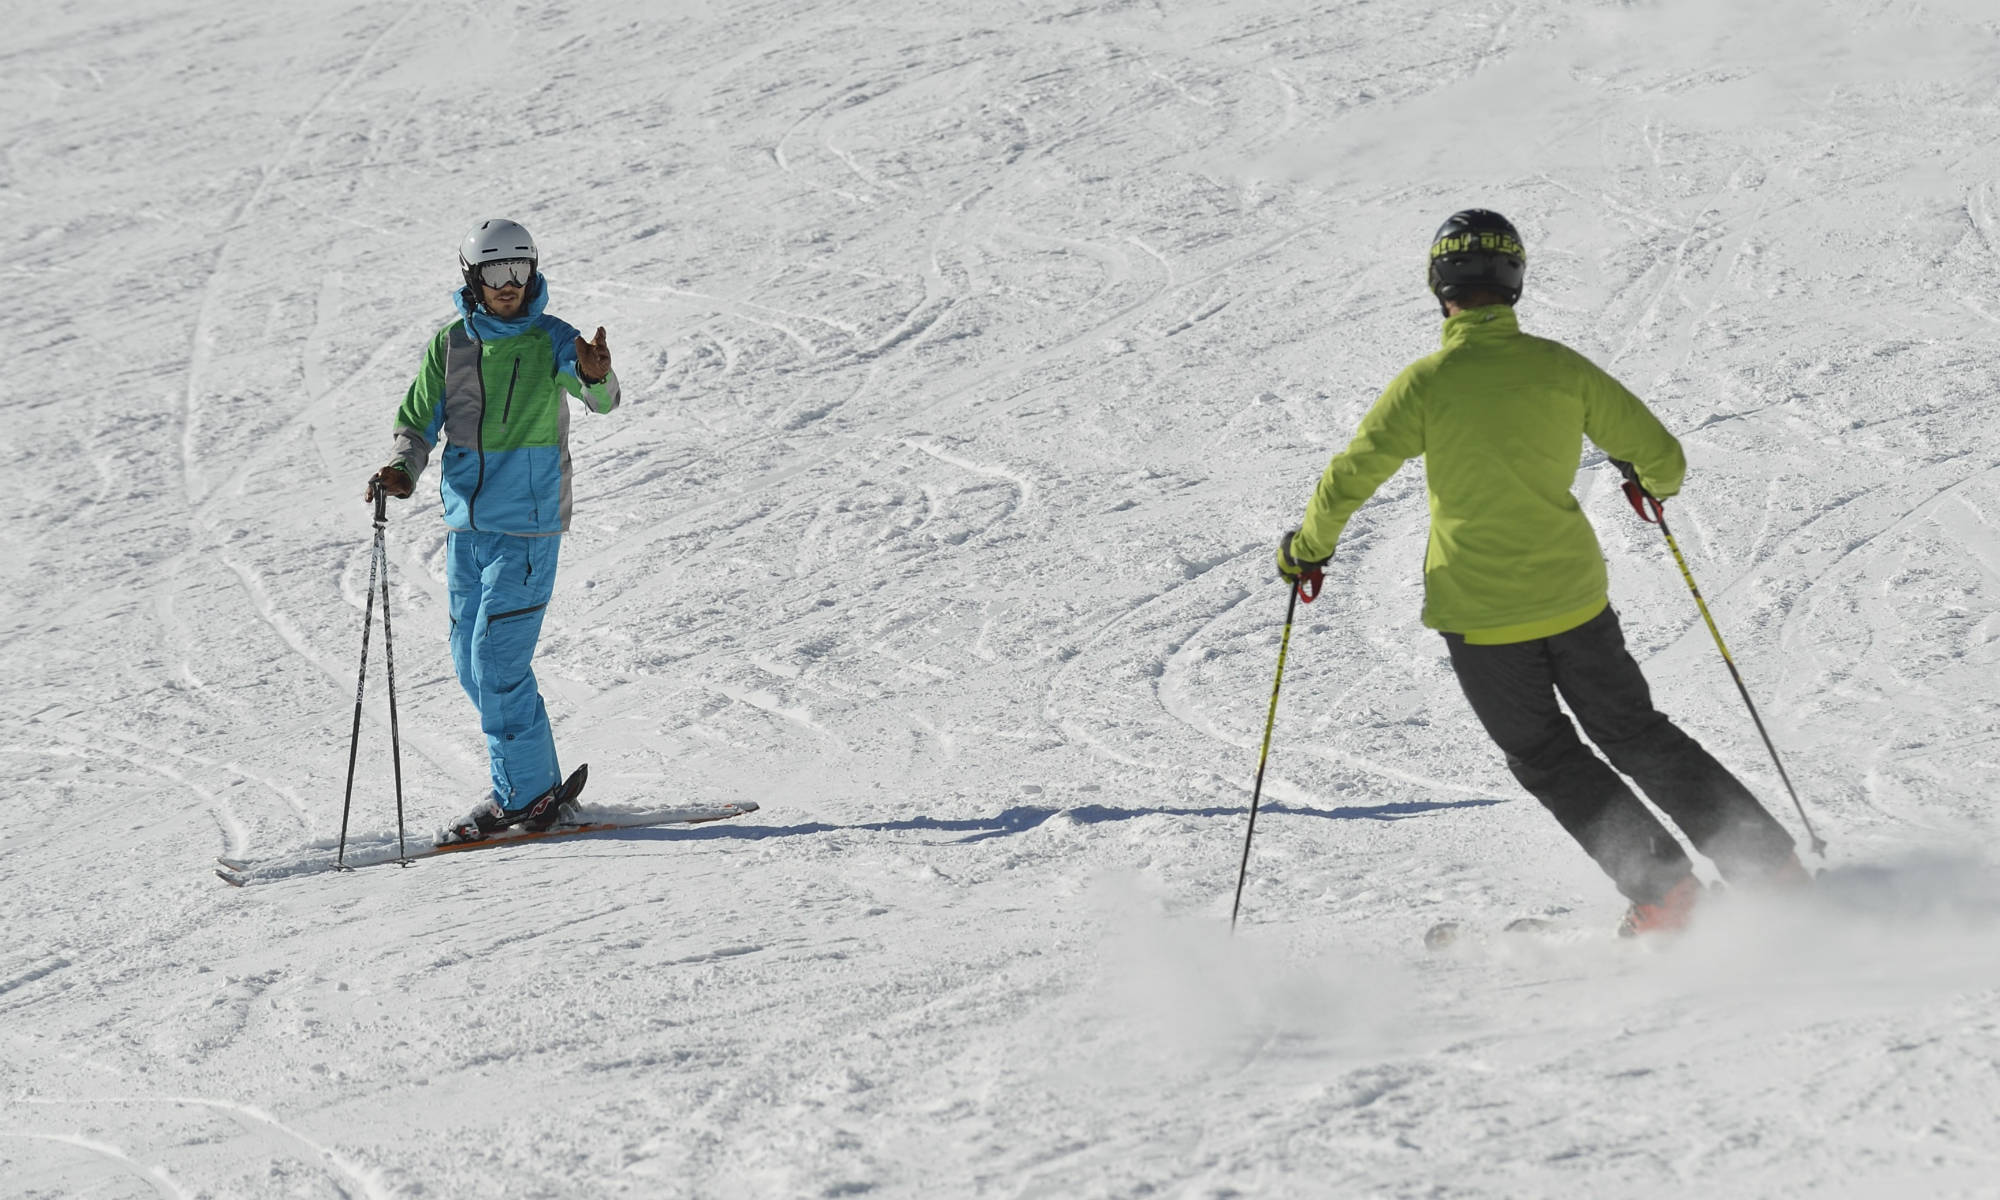 A ski instructor and a beginner are practising the parallel turn together on a ski slope.